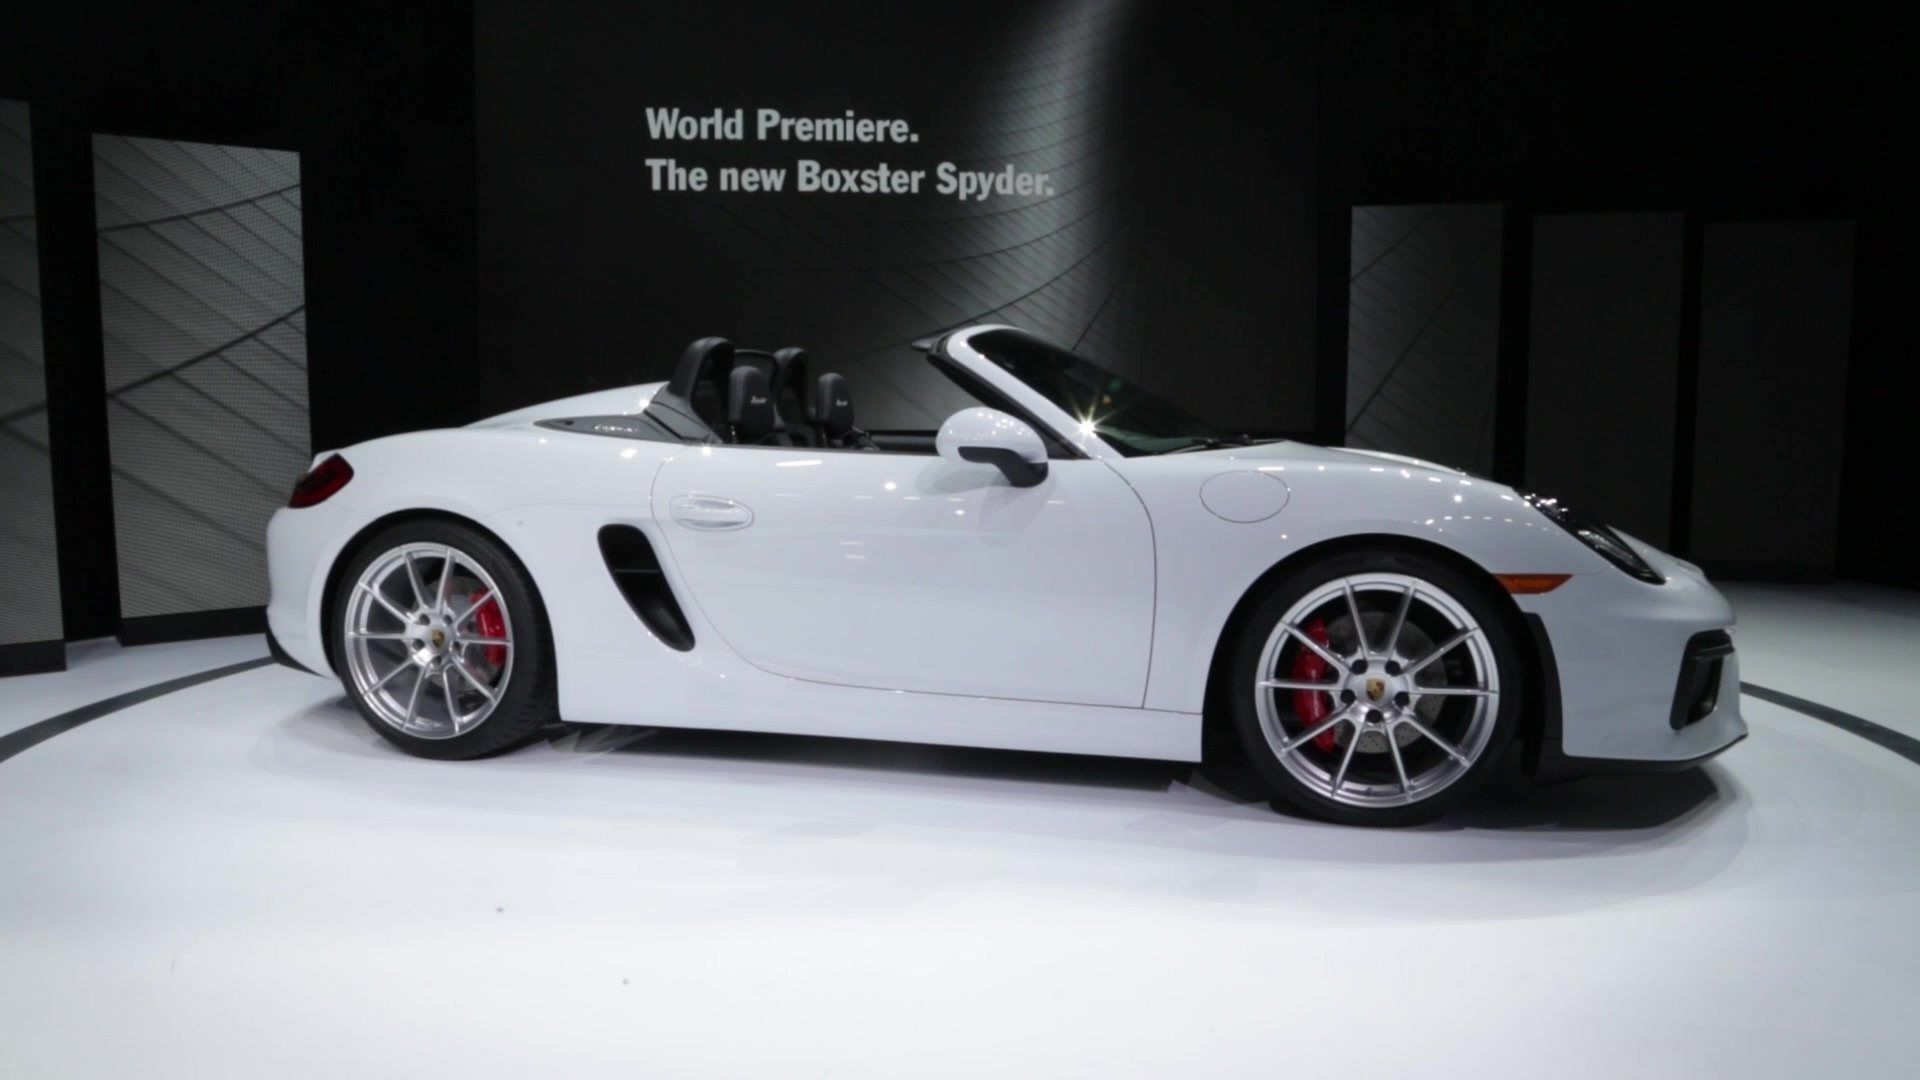 2021 Porsche Boxster Spyder Price And Release Date Porsche Boxster Spyder Boxster Spyder Porsche Boxster